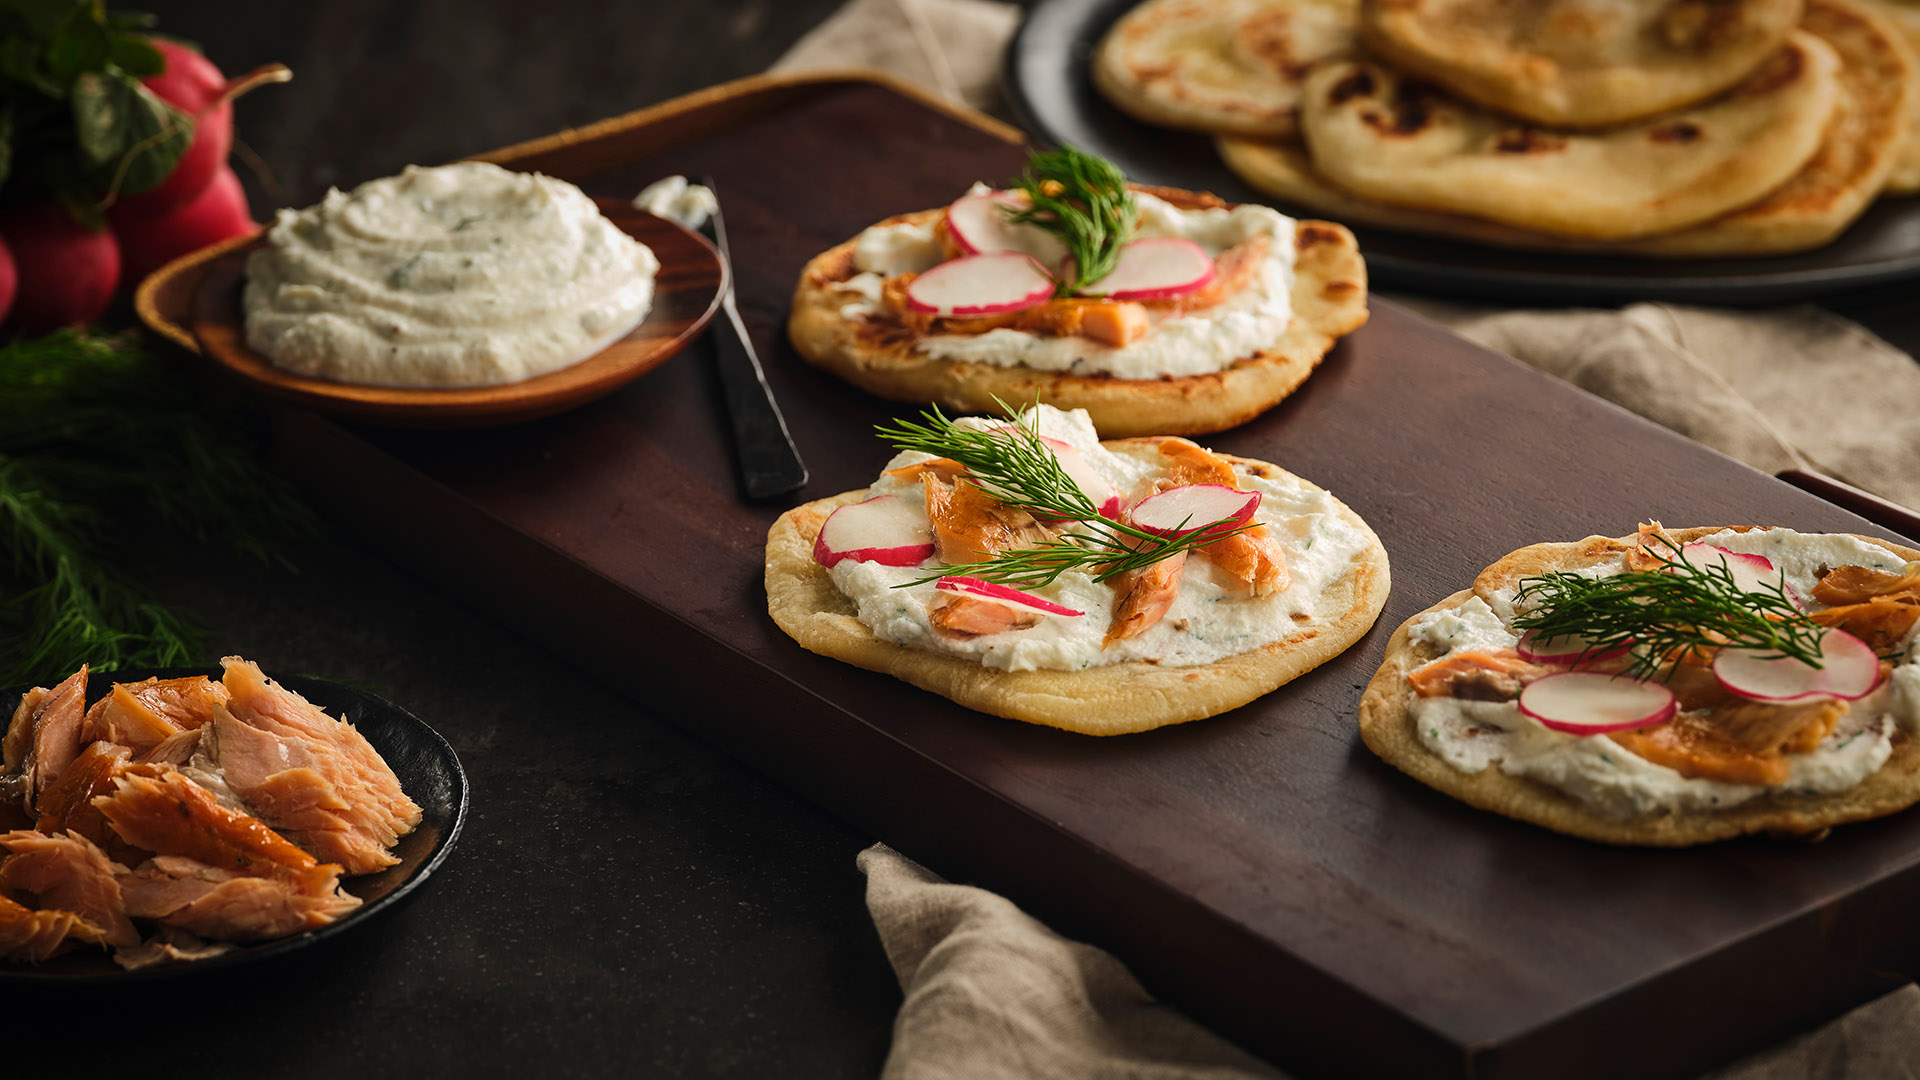 Flatbreads on wood board with radish, Labneh and garnish